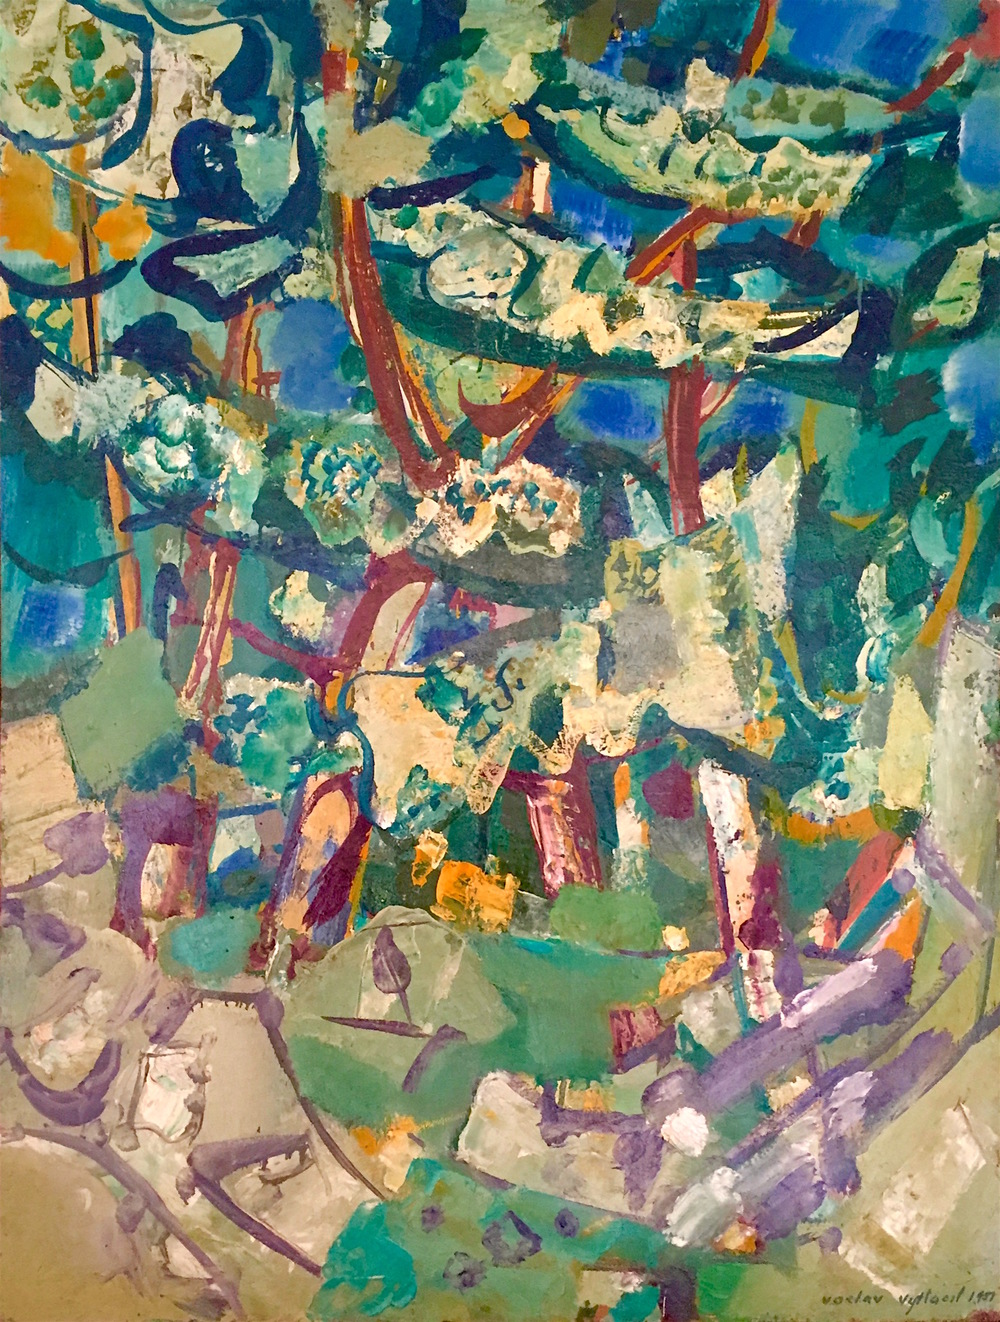 The woods in the summer, 1951   Medium: Paintings, Oil on canvas  Size: 45.5 x 35 in. (115.6 x 88.9 cm.)  Markings: Signed and dated in the lower righ